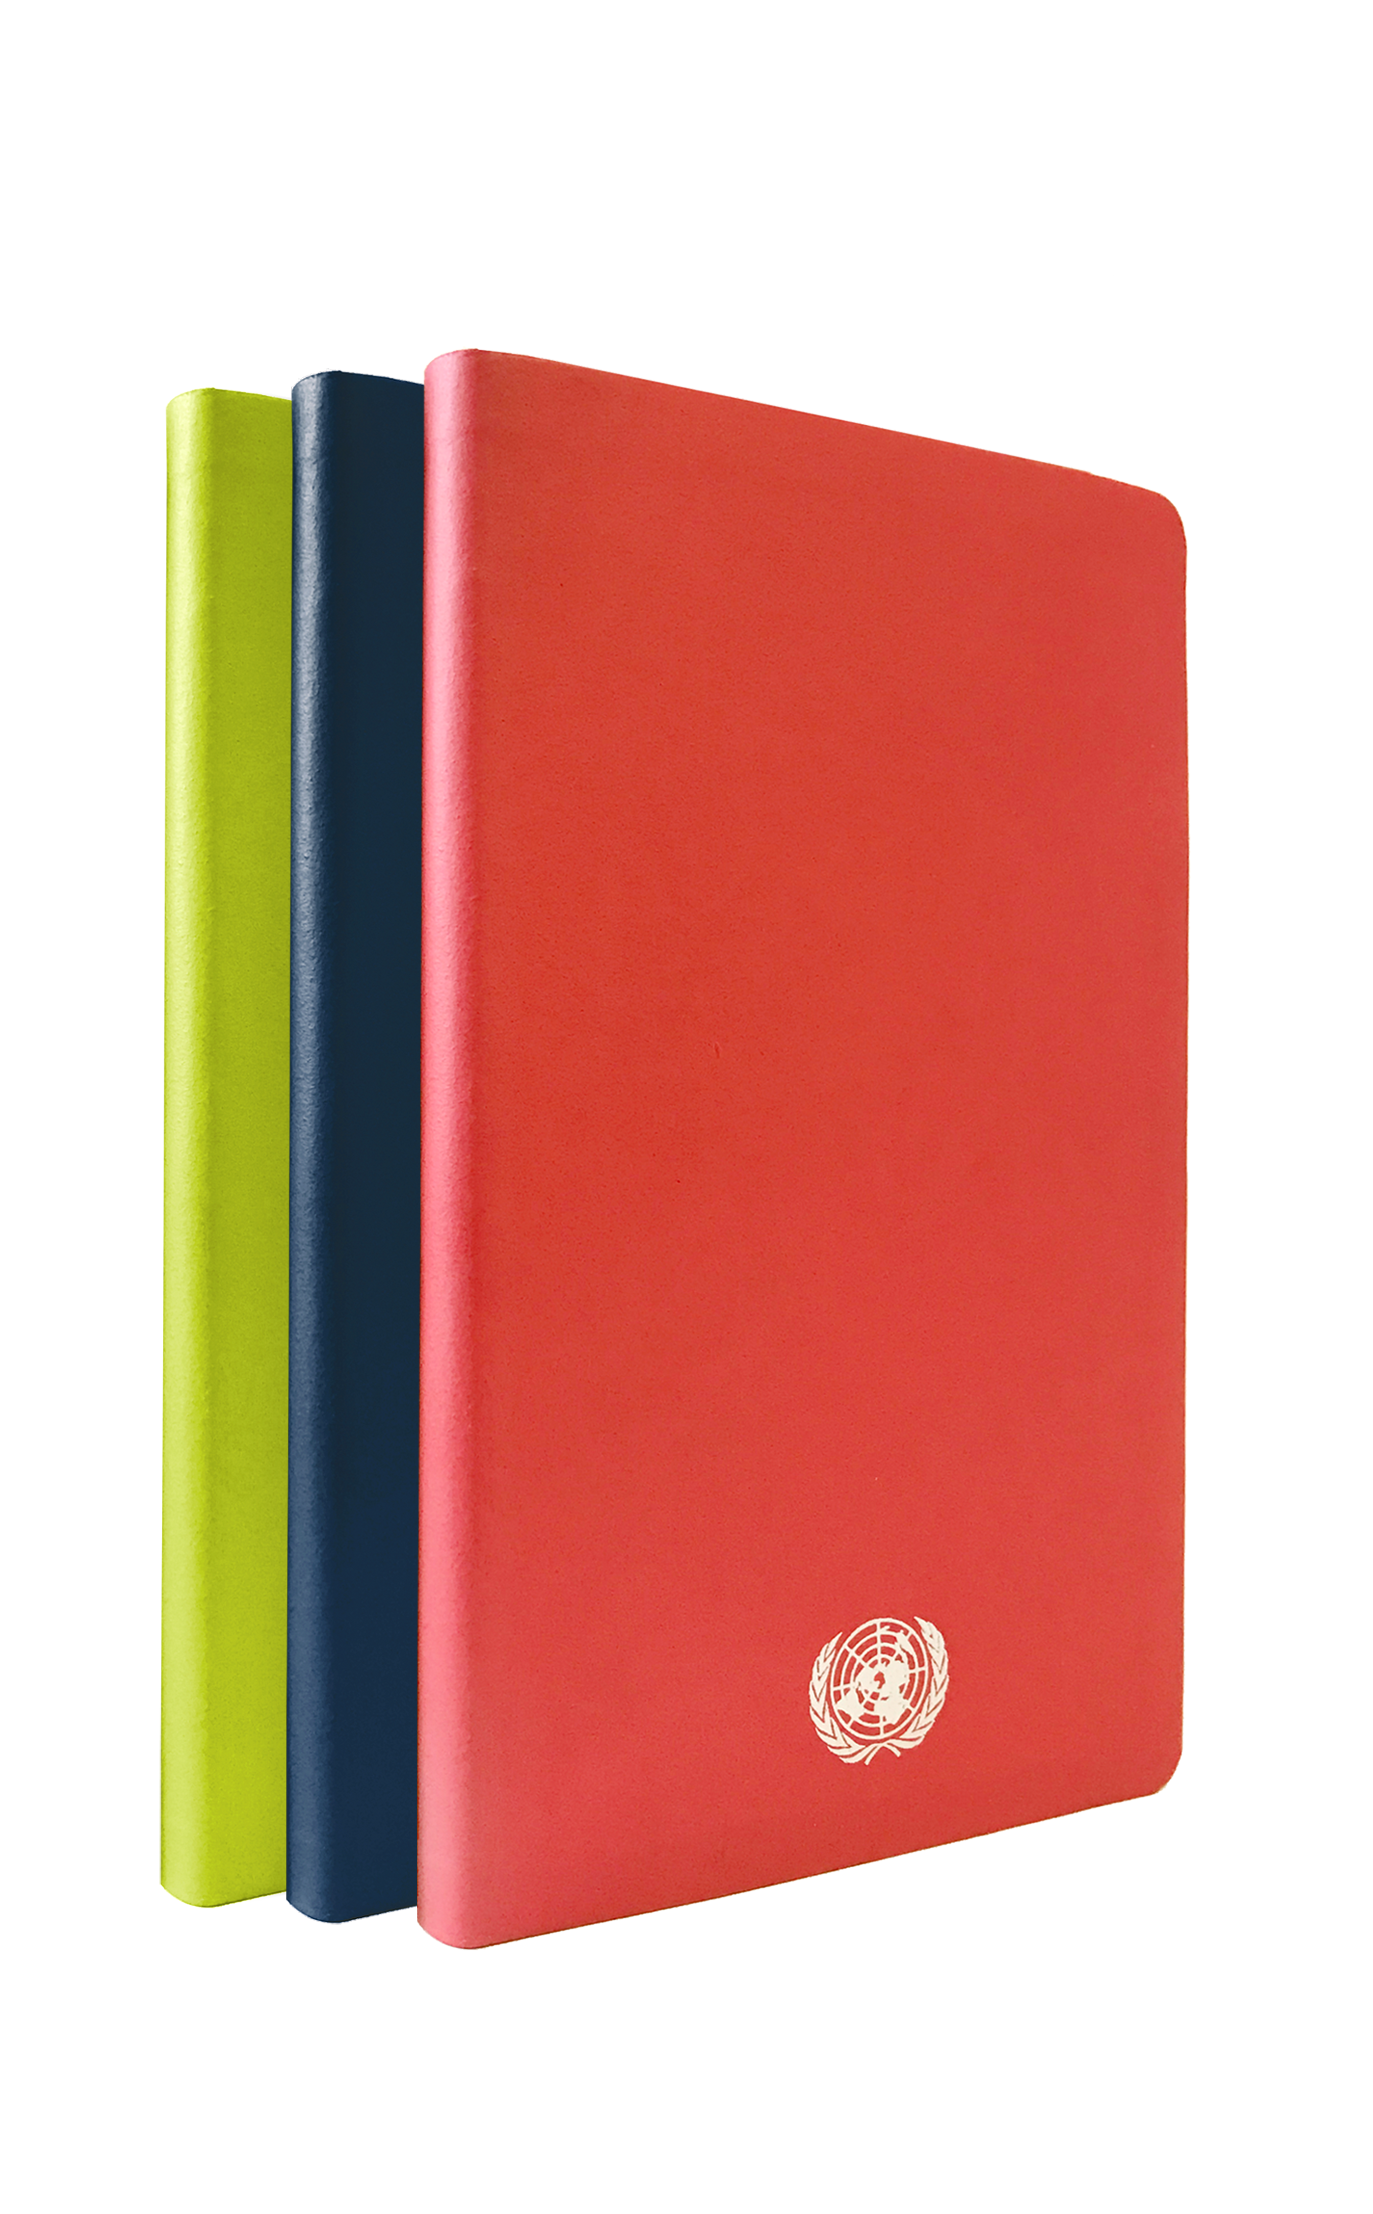 An image of three medium sized, recycled leather, delicious red, granny smith green and bella blue coloured journals with the UN Emblem embossed in silver at the bottom.